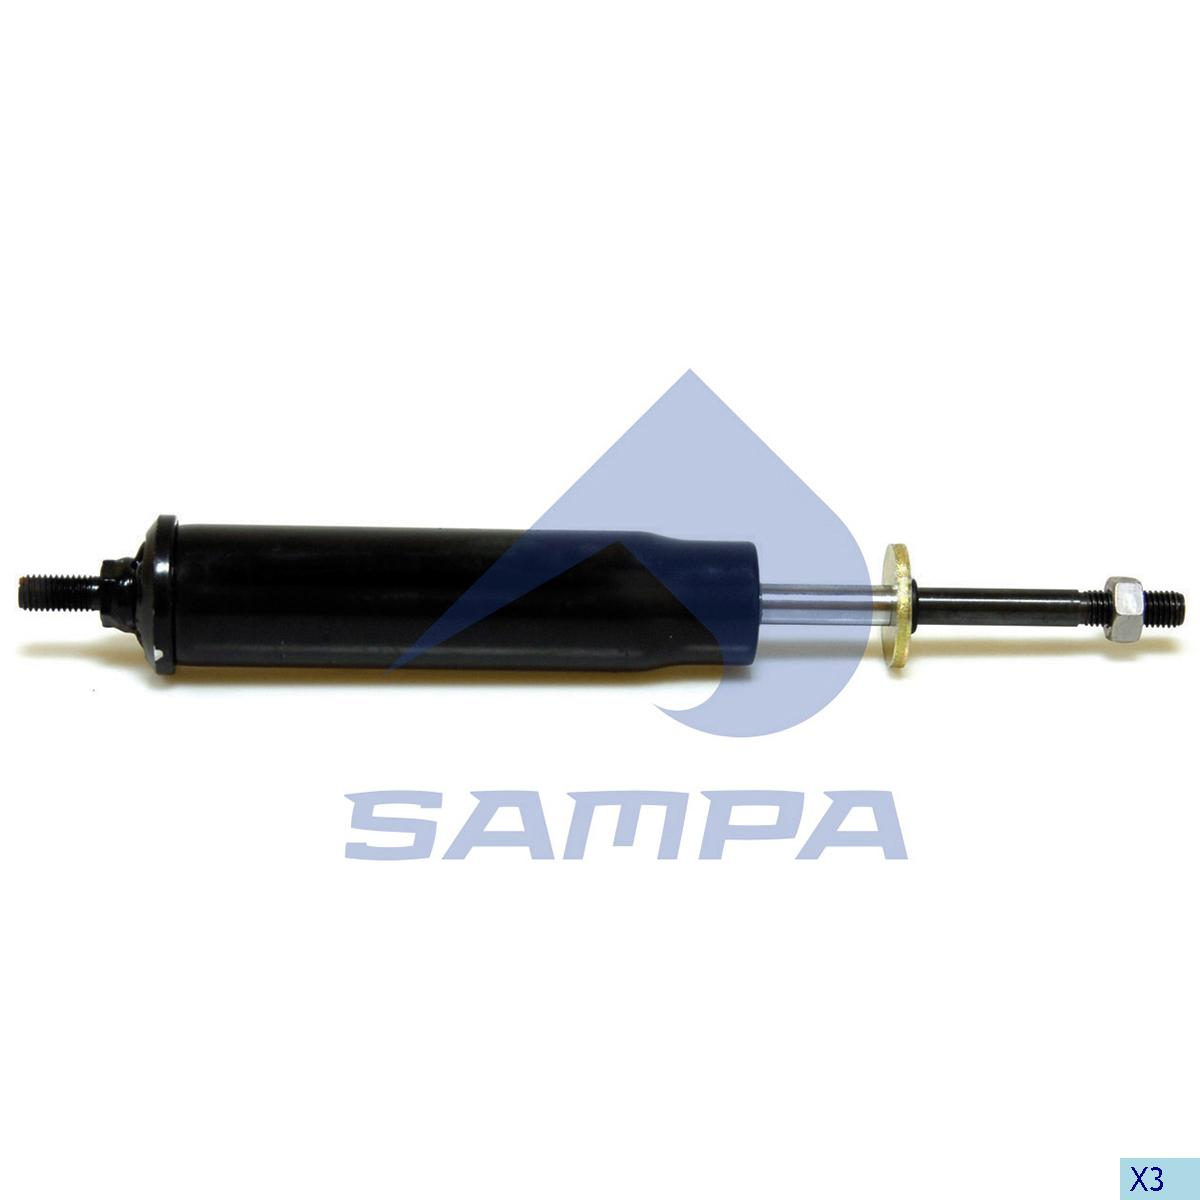 Shock Absorber, Cab, Scania, Cab